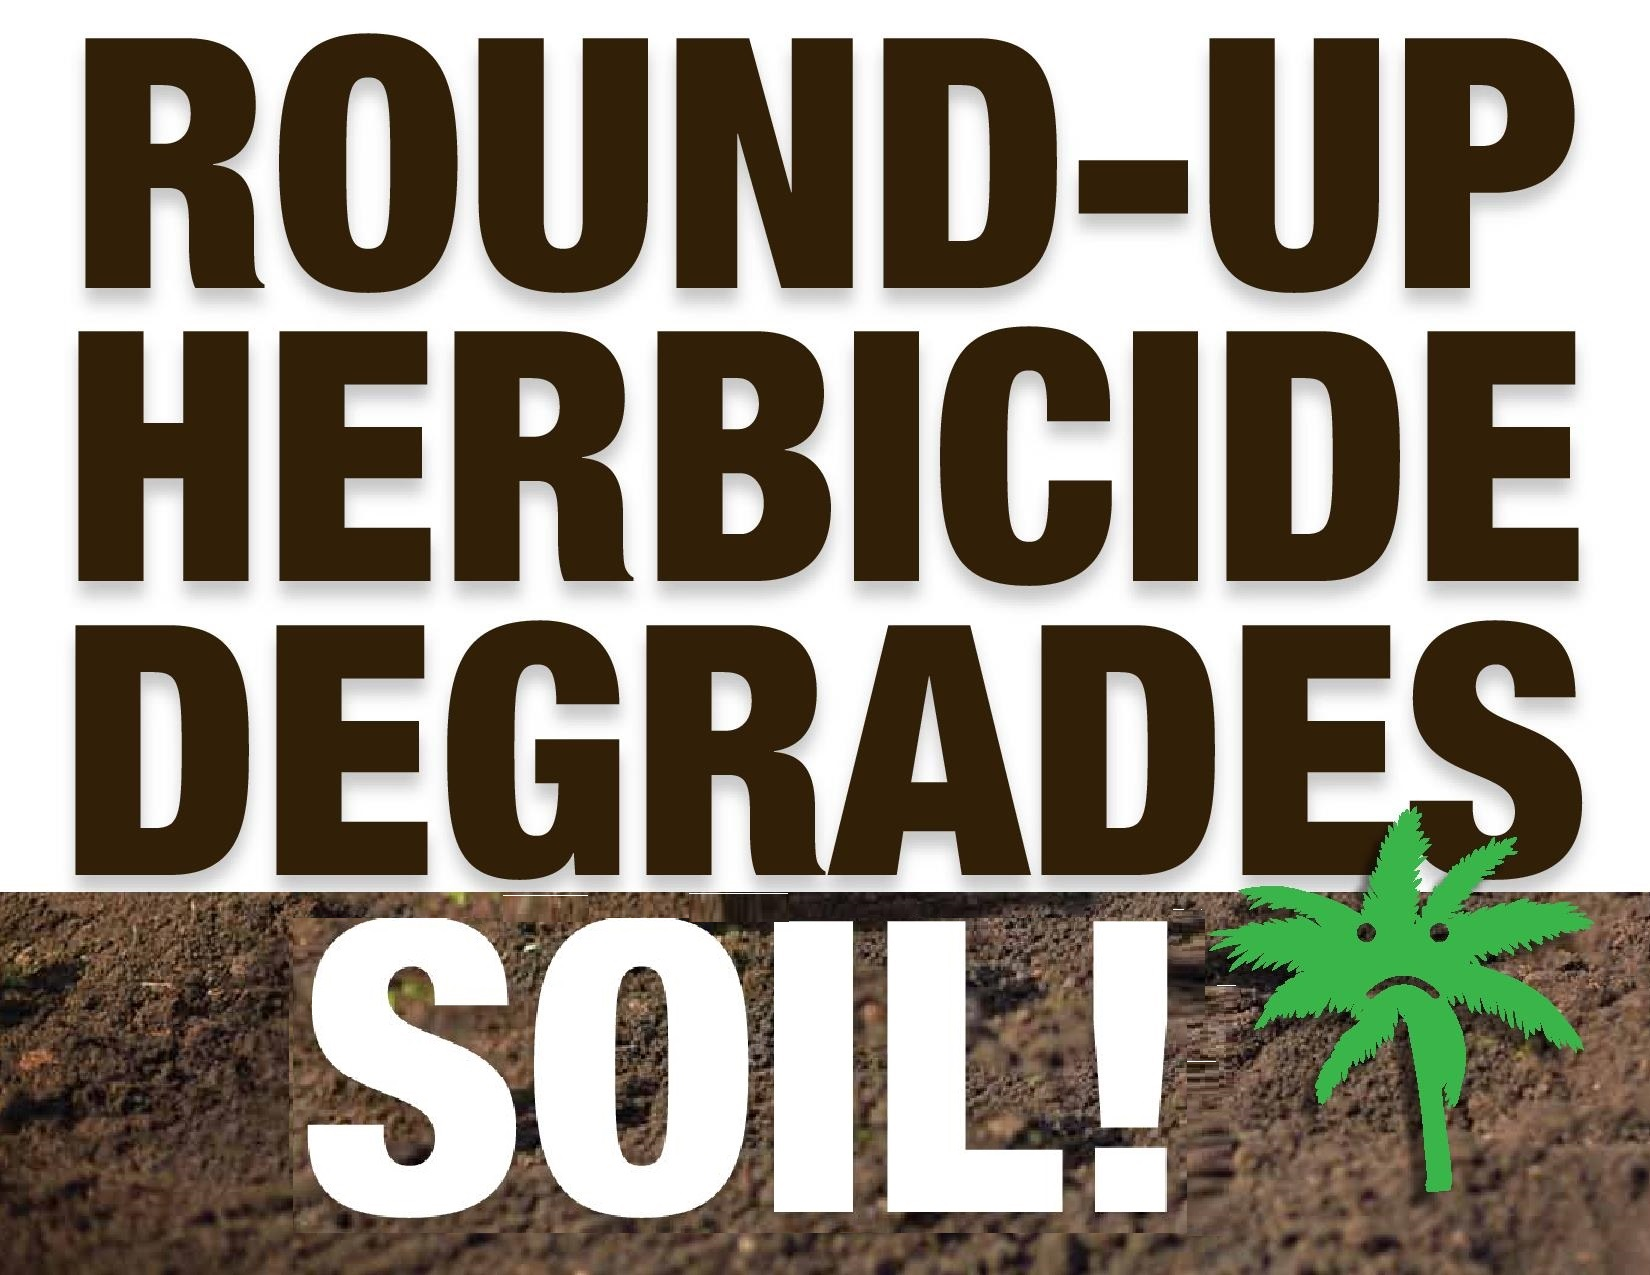 Round-Up Herbicide Degrades soi